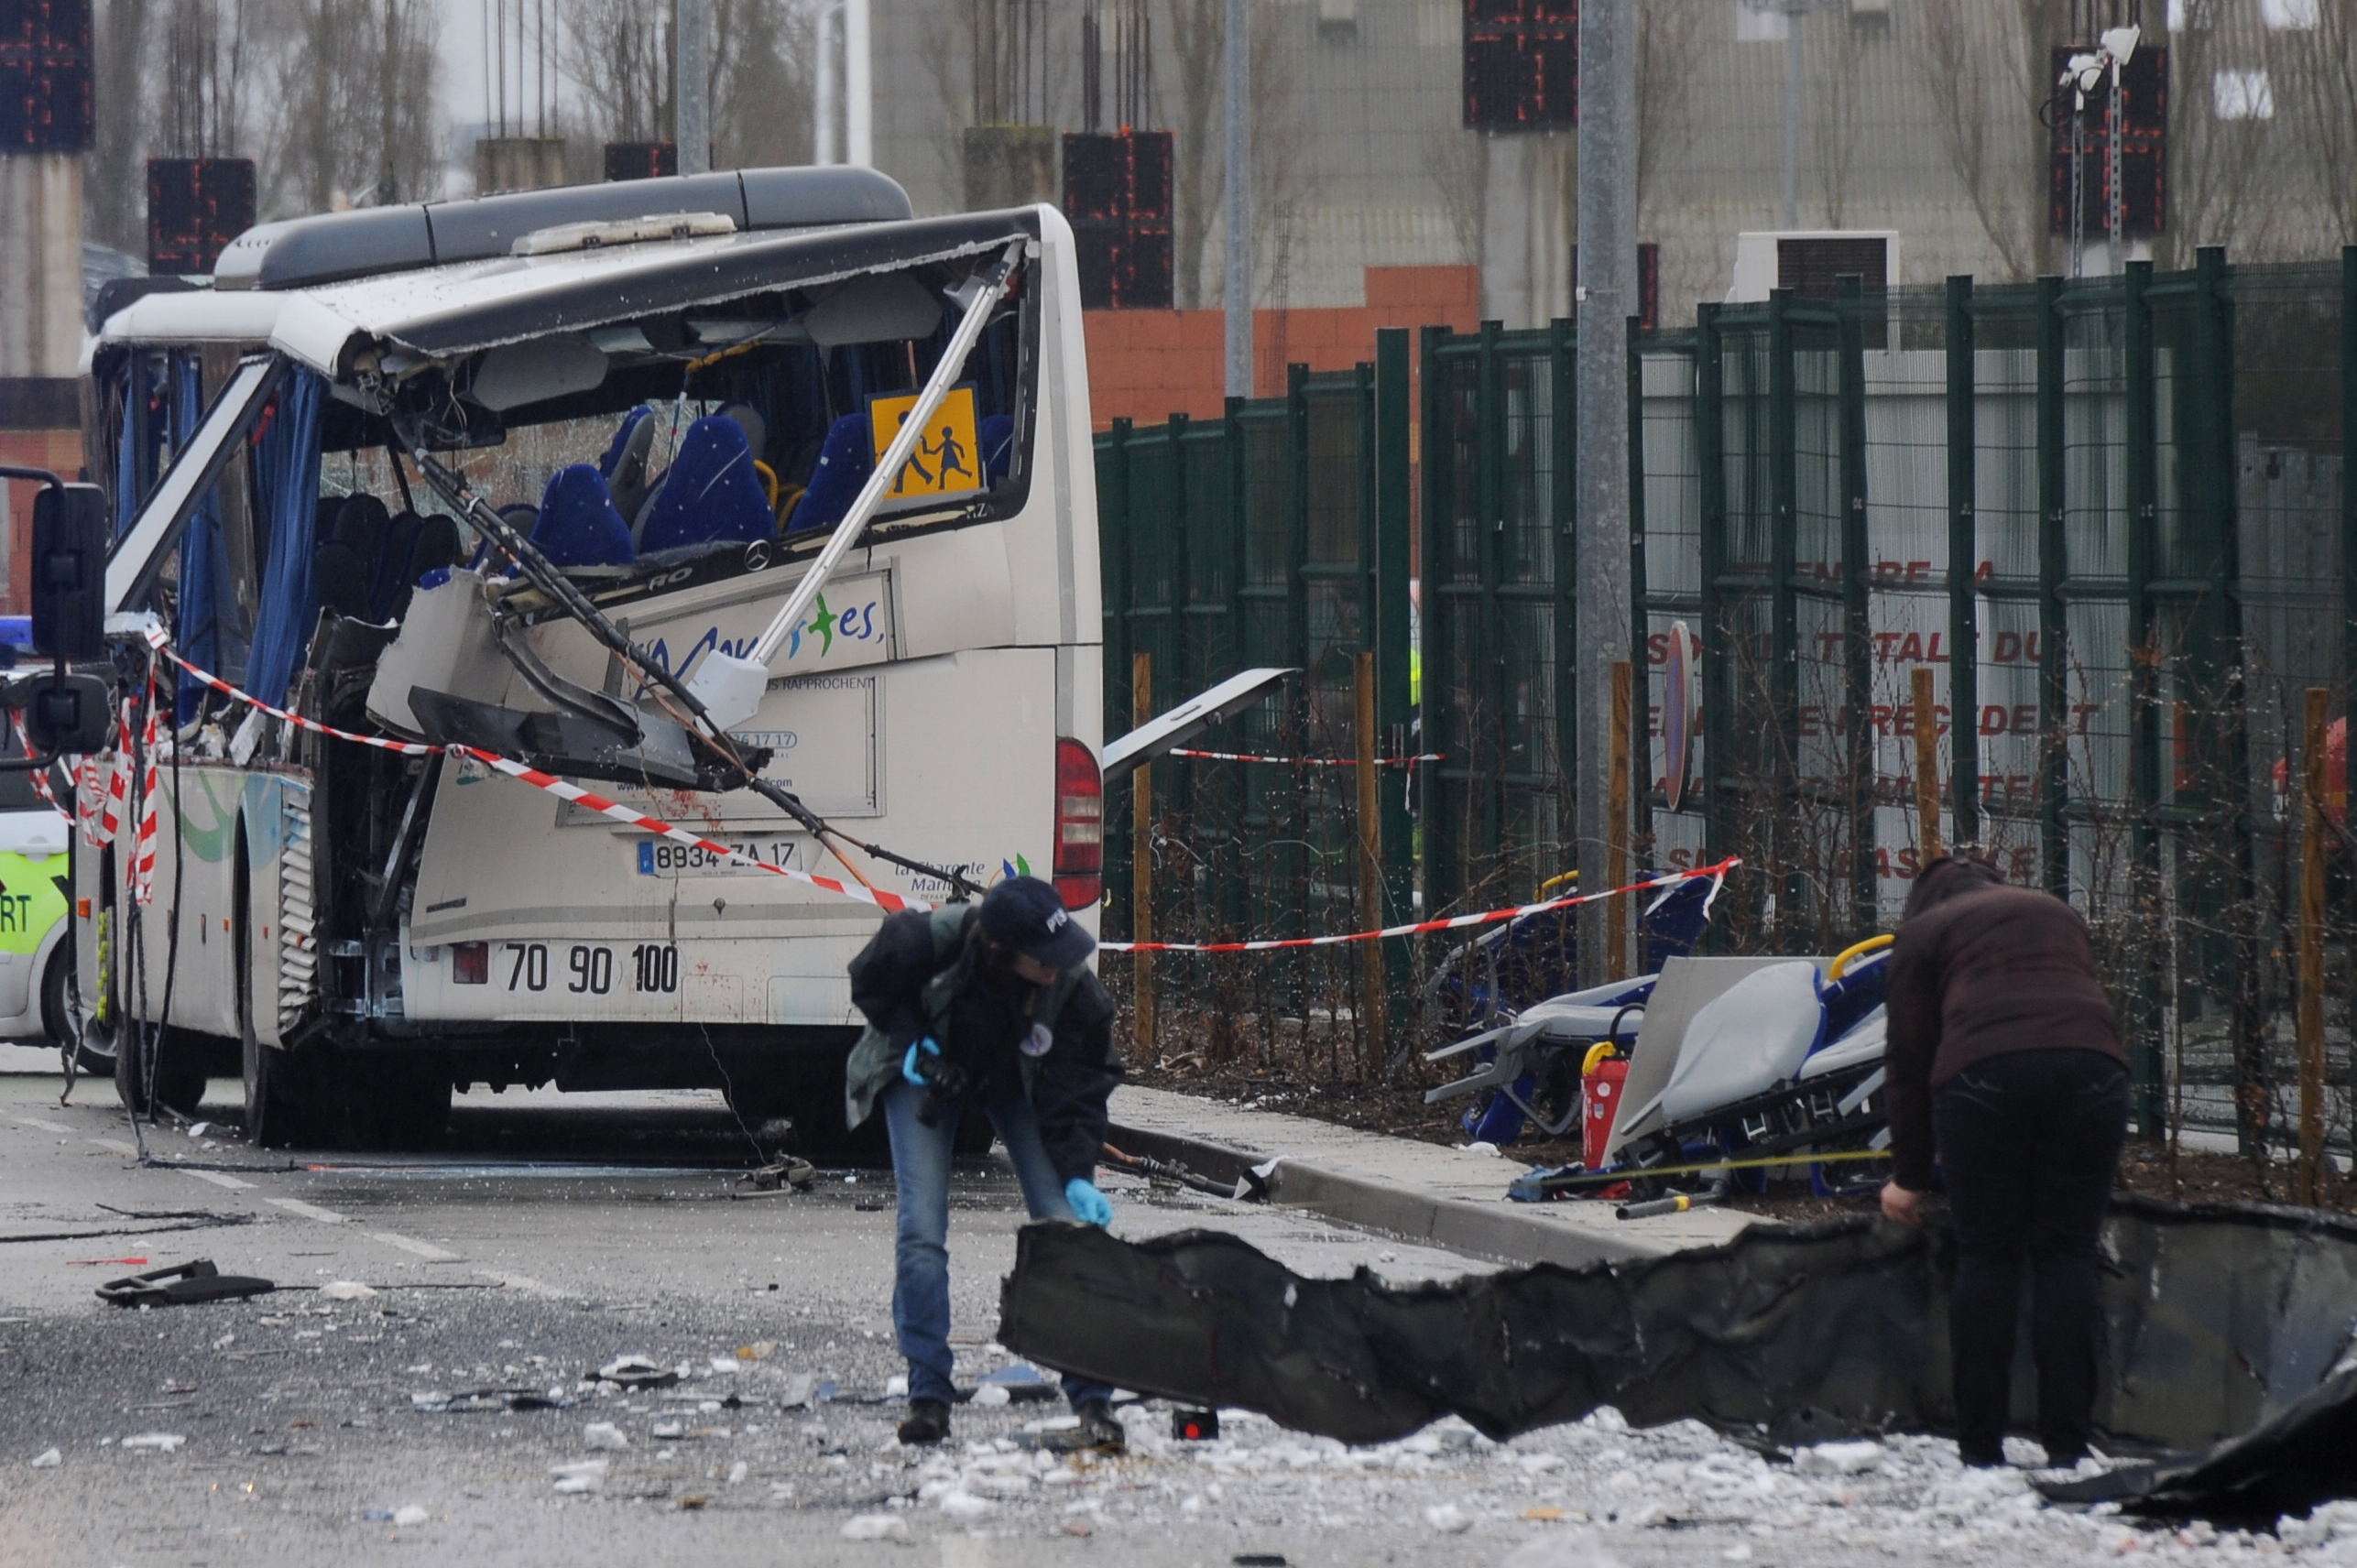 france school bus crash with truck kills students in rochefort on atlantic coast cbs news. Black Bedroom Furniture Sets. Home Design Ideas